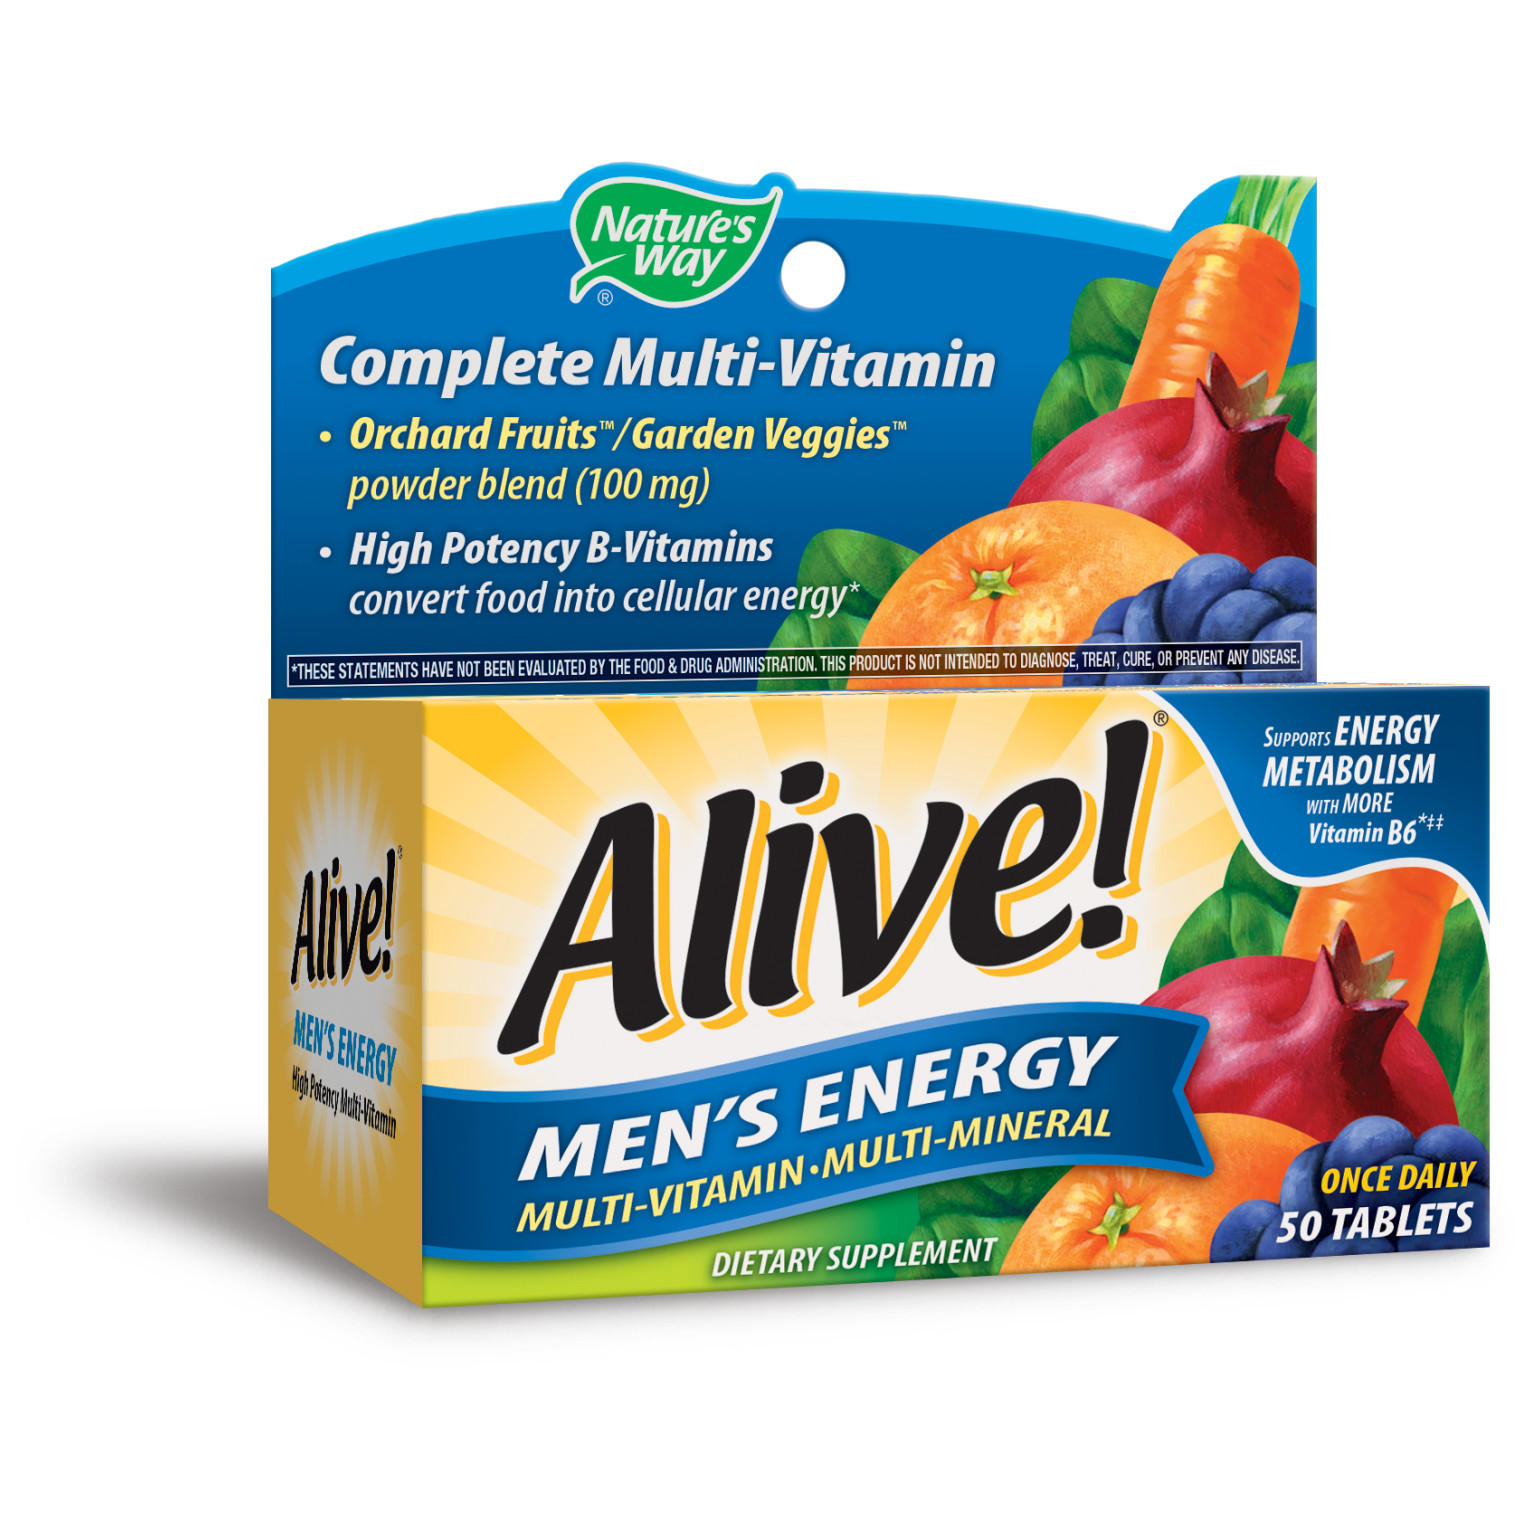 Alive Men S Energy Multivitamin Supplements With Orchard Fruits Garden Veggies Powder Blend 100 Mg 50 Tablets Walmart Com Walmart Com